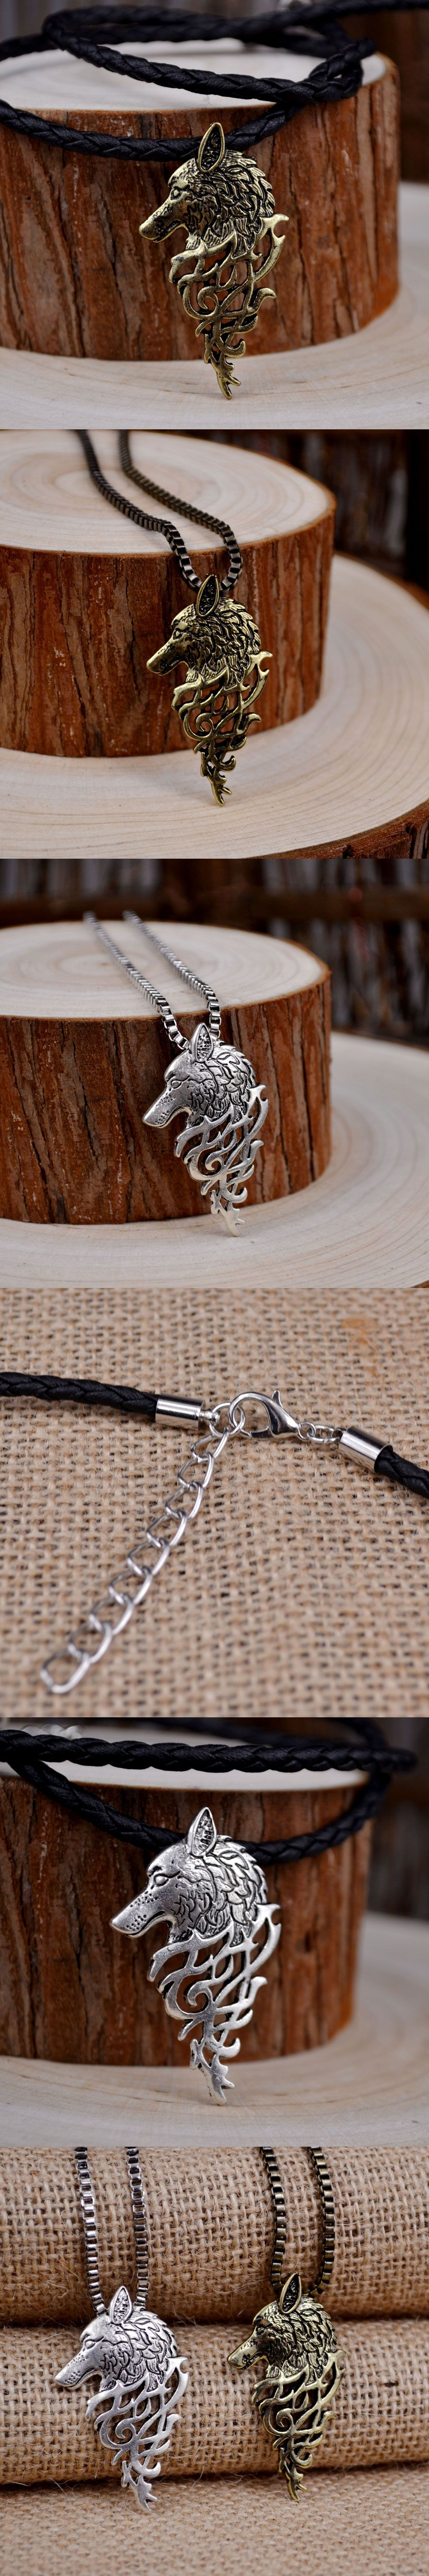 head front celts crafty dragon wolf product pendant